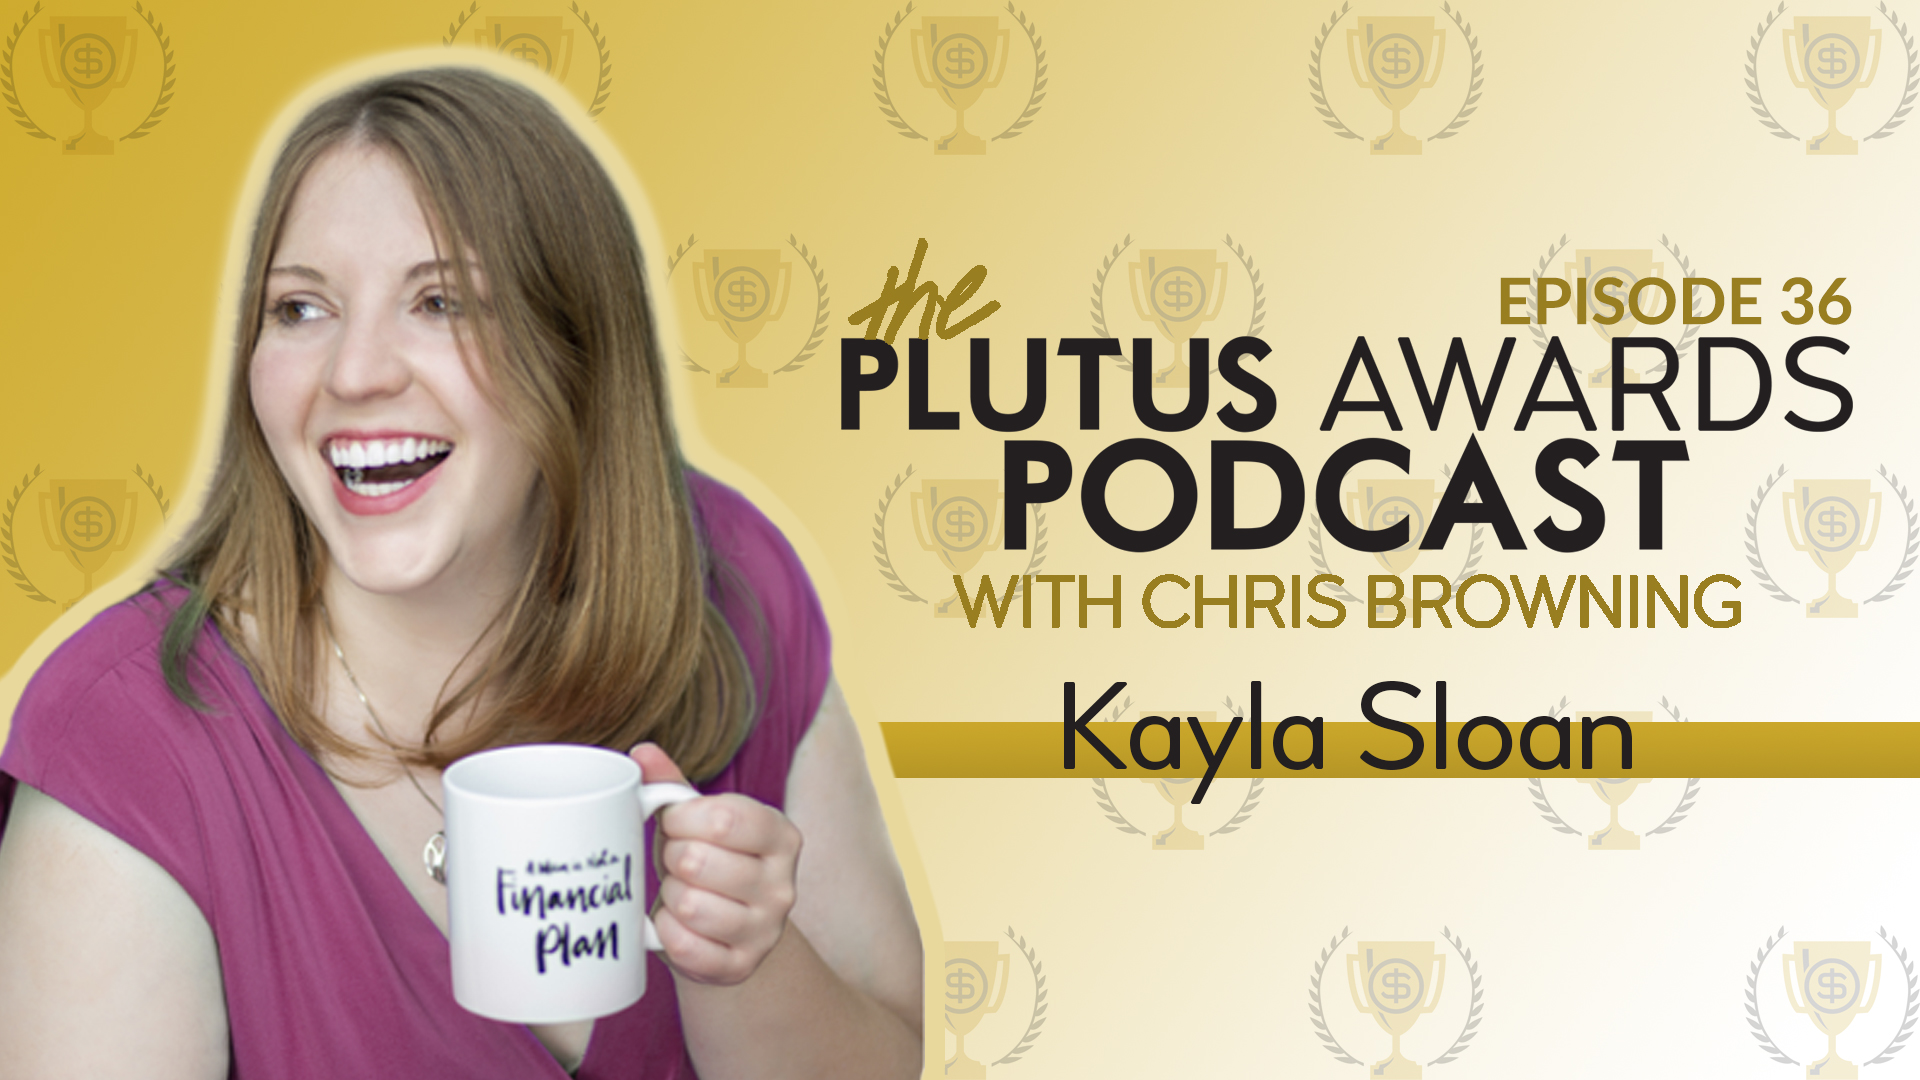 Plutus Awards Podcast Kayla Sloan Featured Image